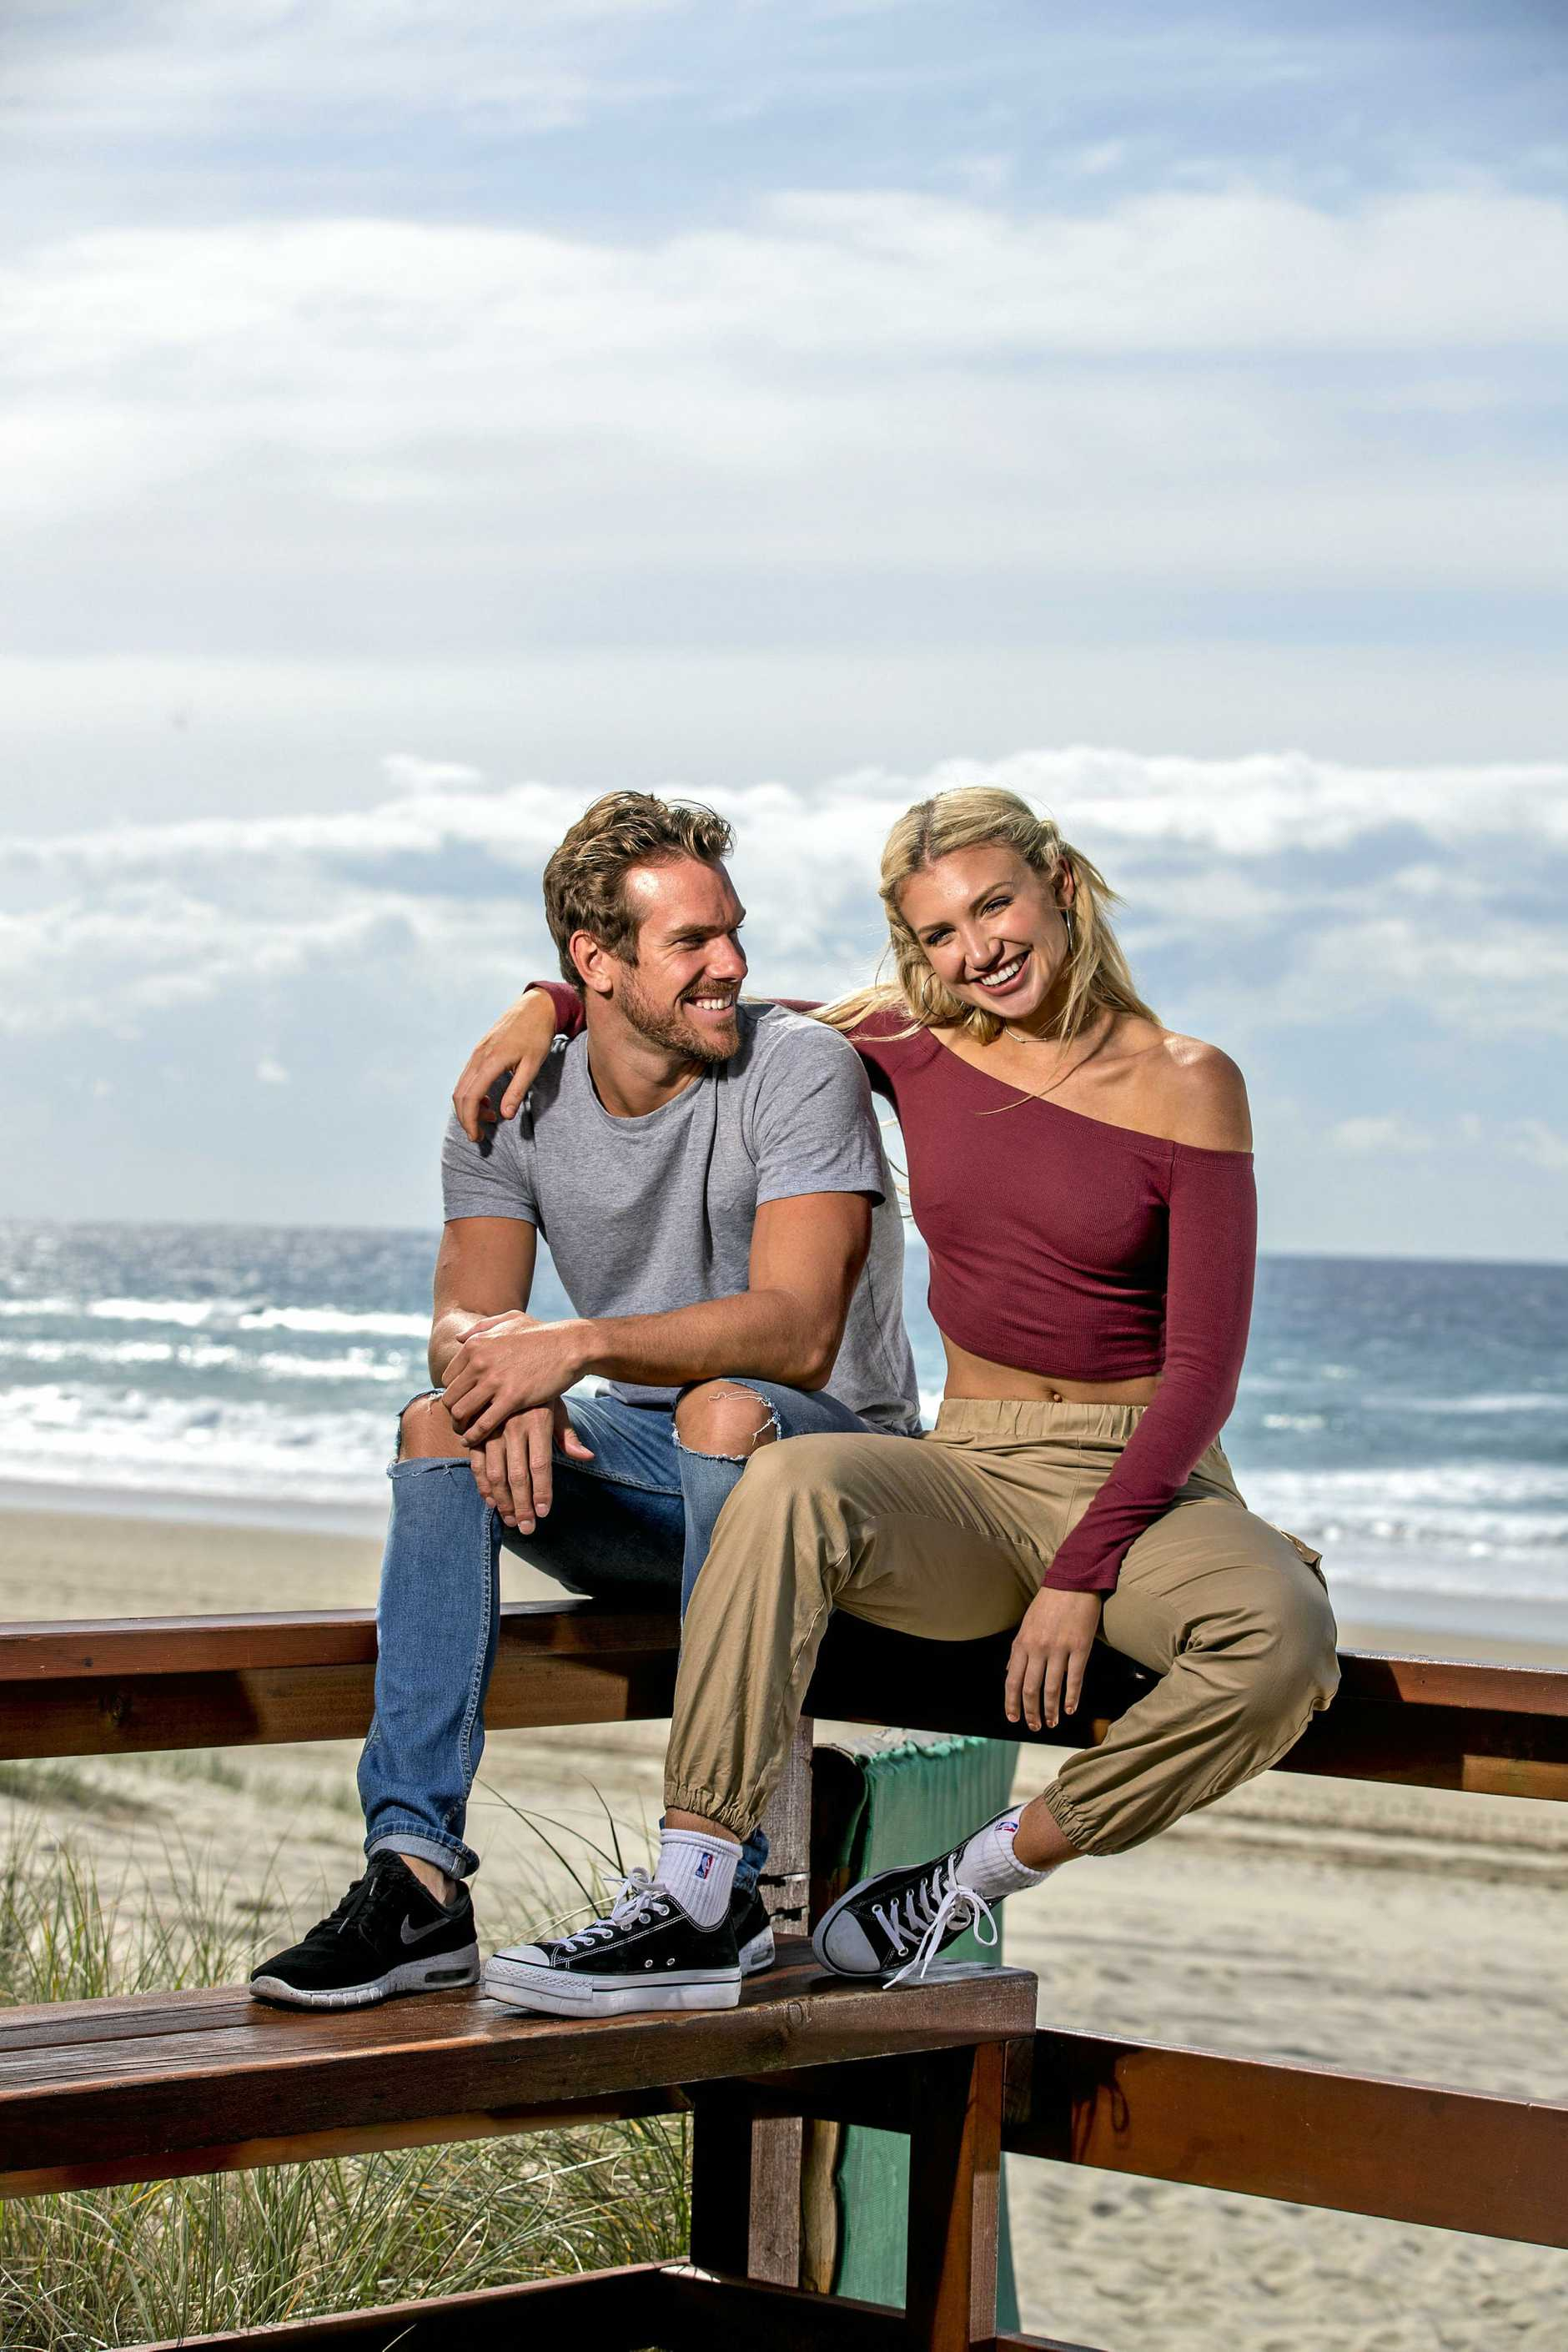 Australian swimmer James Roberts and his partner/best friend influencer Gabby Epstein are each other's best friends.